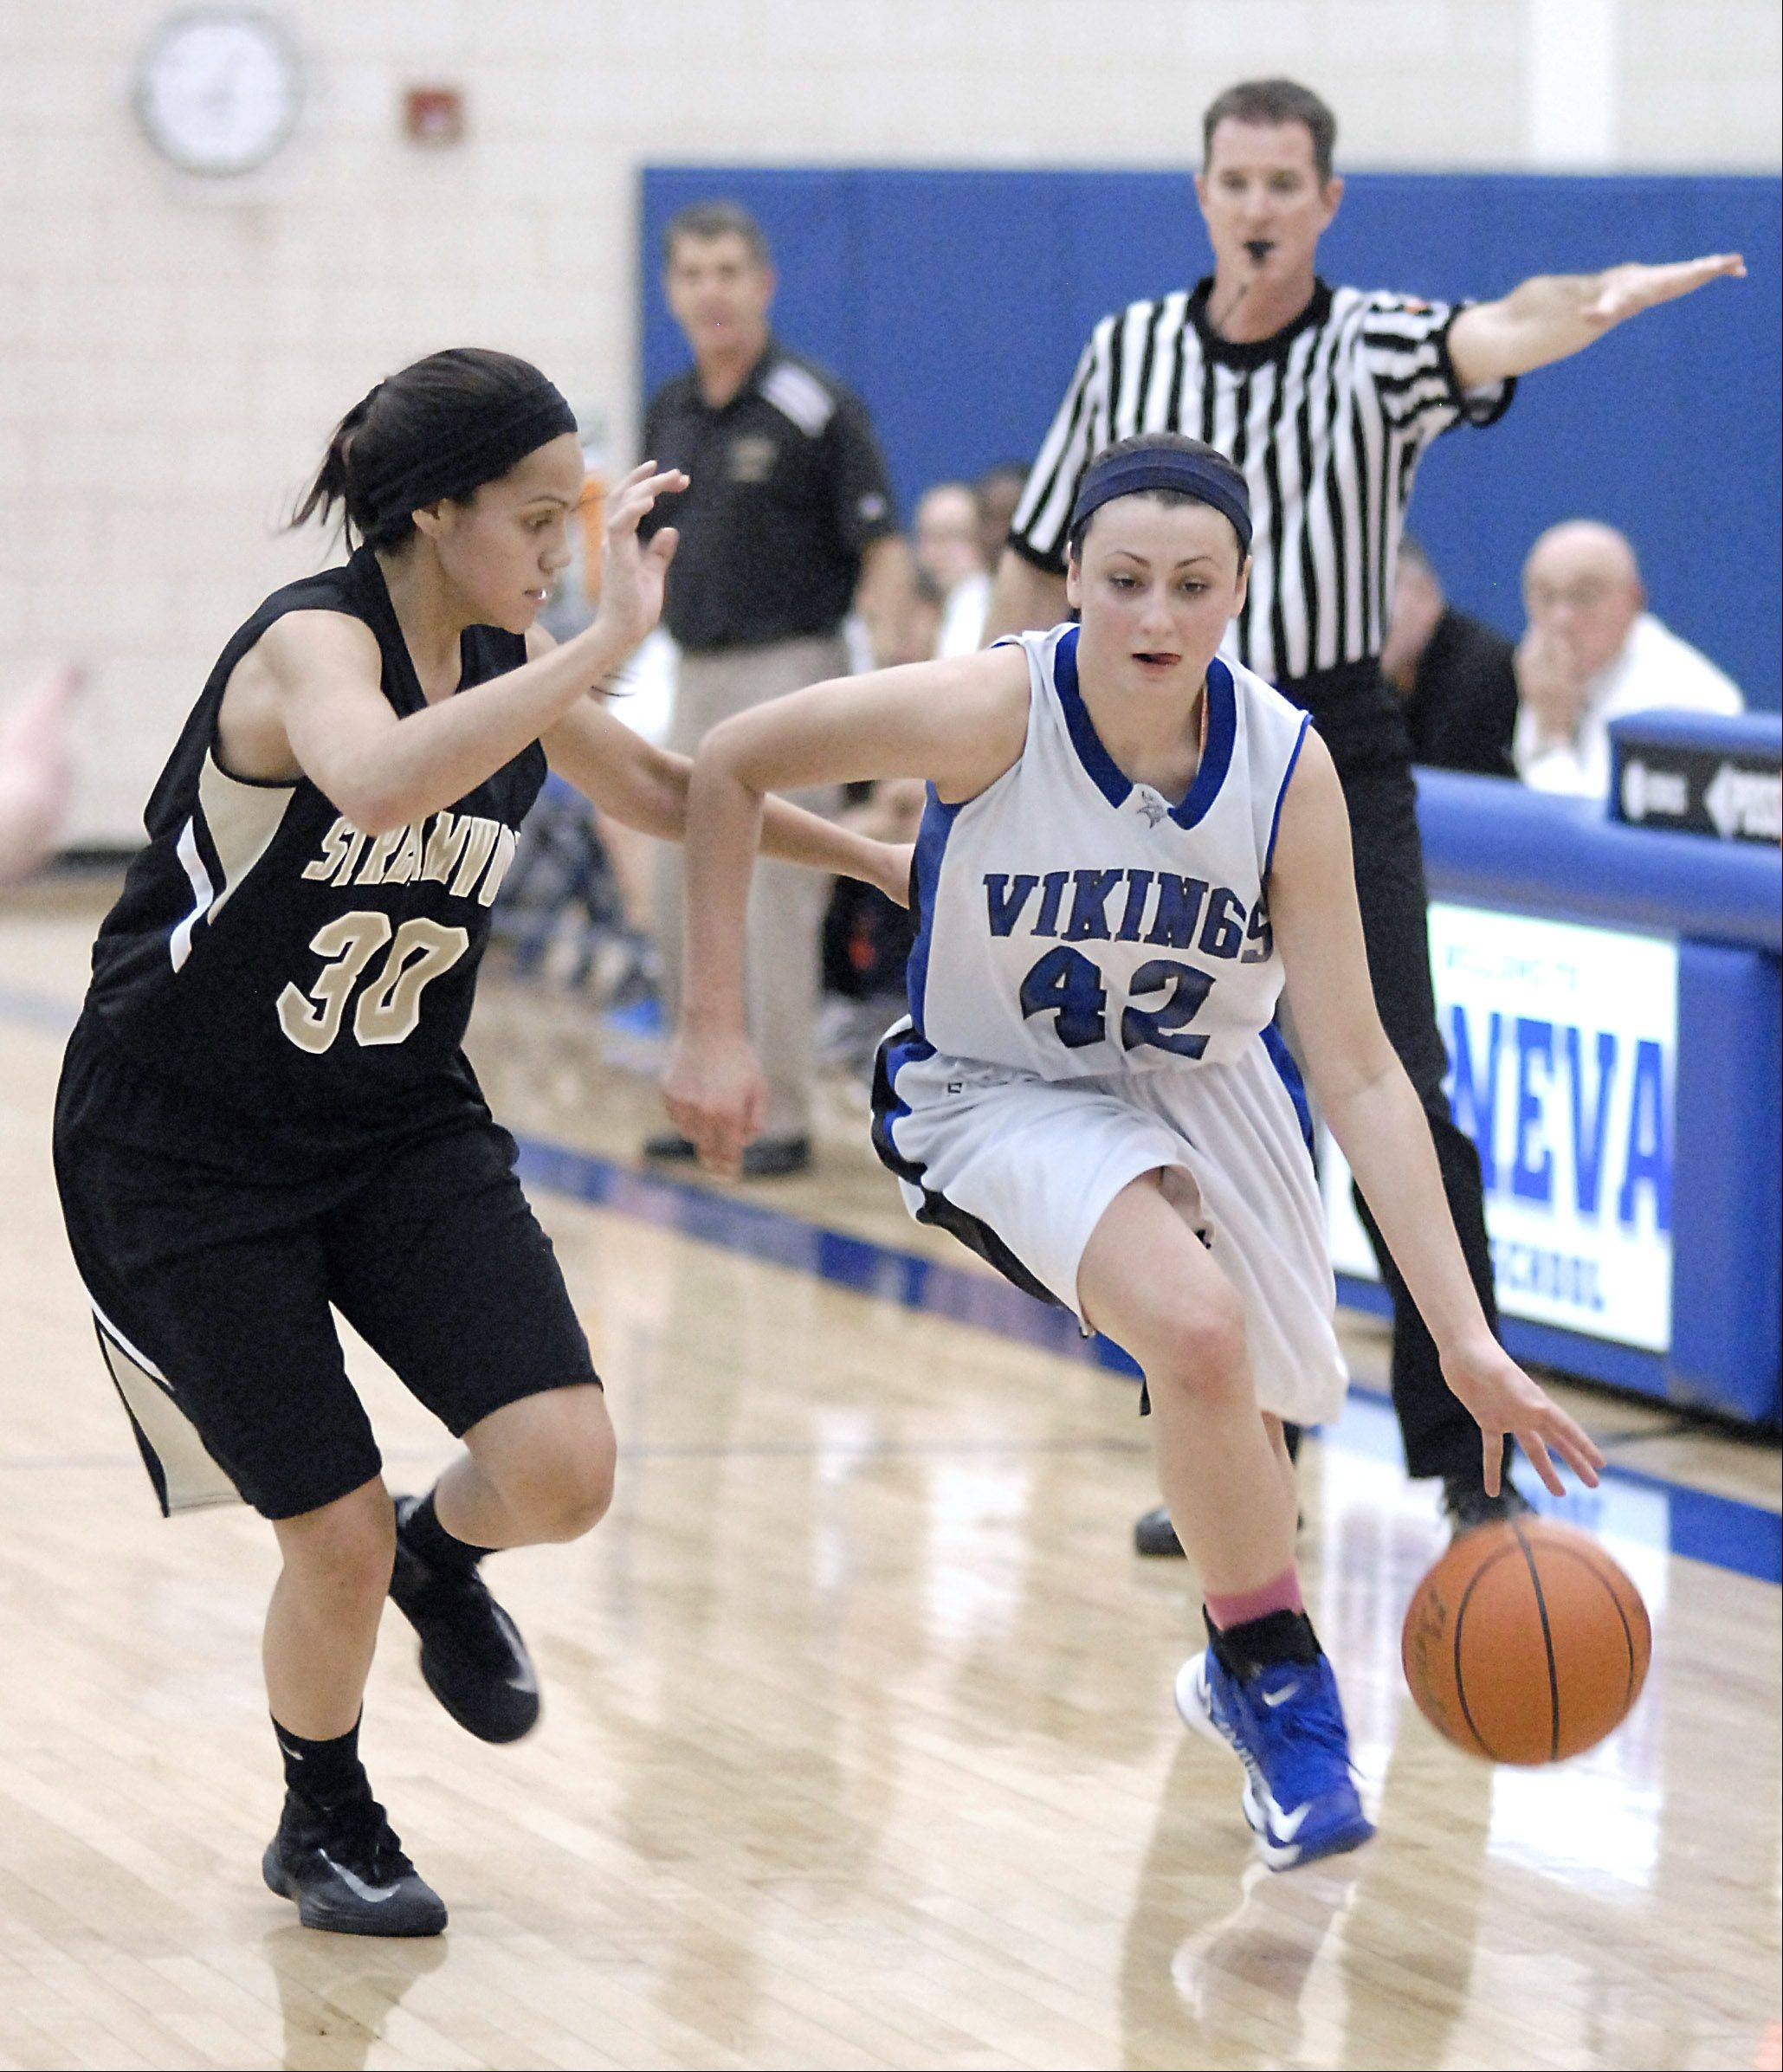 Streamwood's Jessica Cerda covers Geneva's Abby Novak in the third quarter.